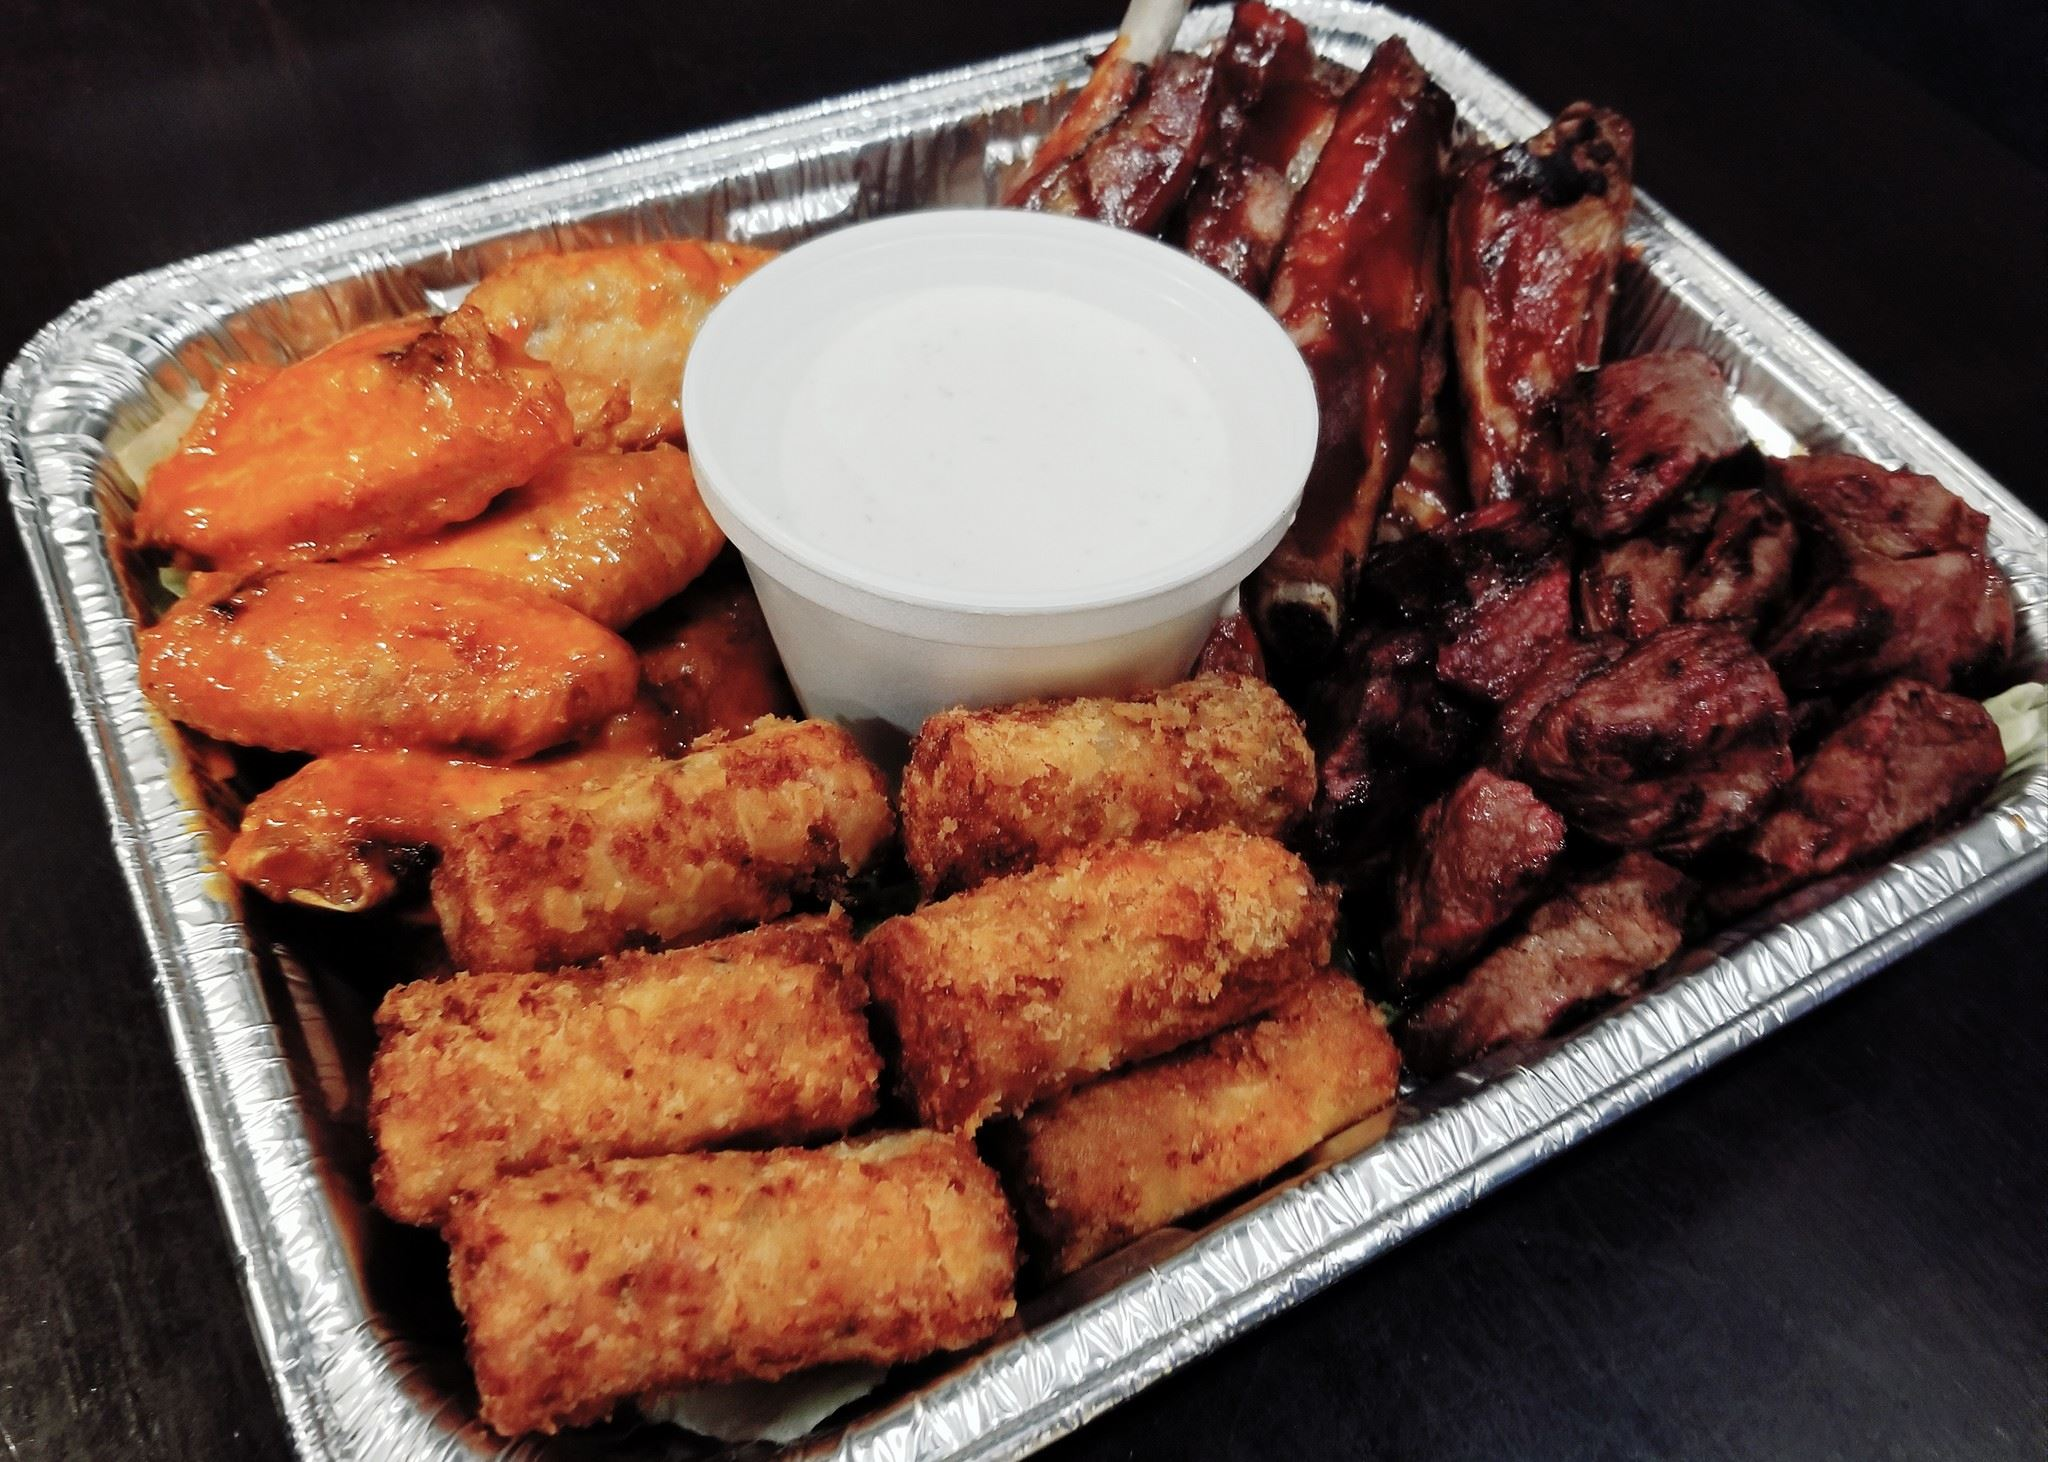 Ribs, Chicken, and other assorted meats surrounding ranch dipping sauce